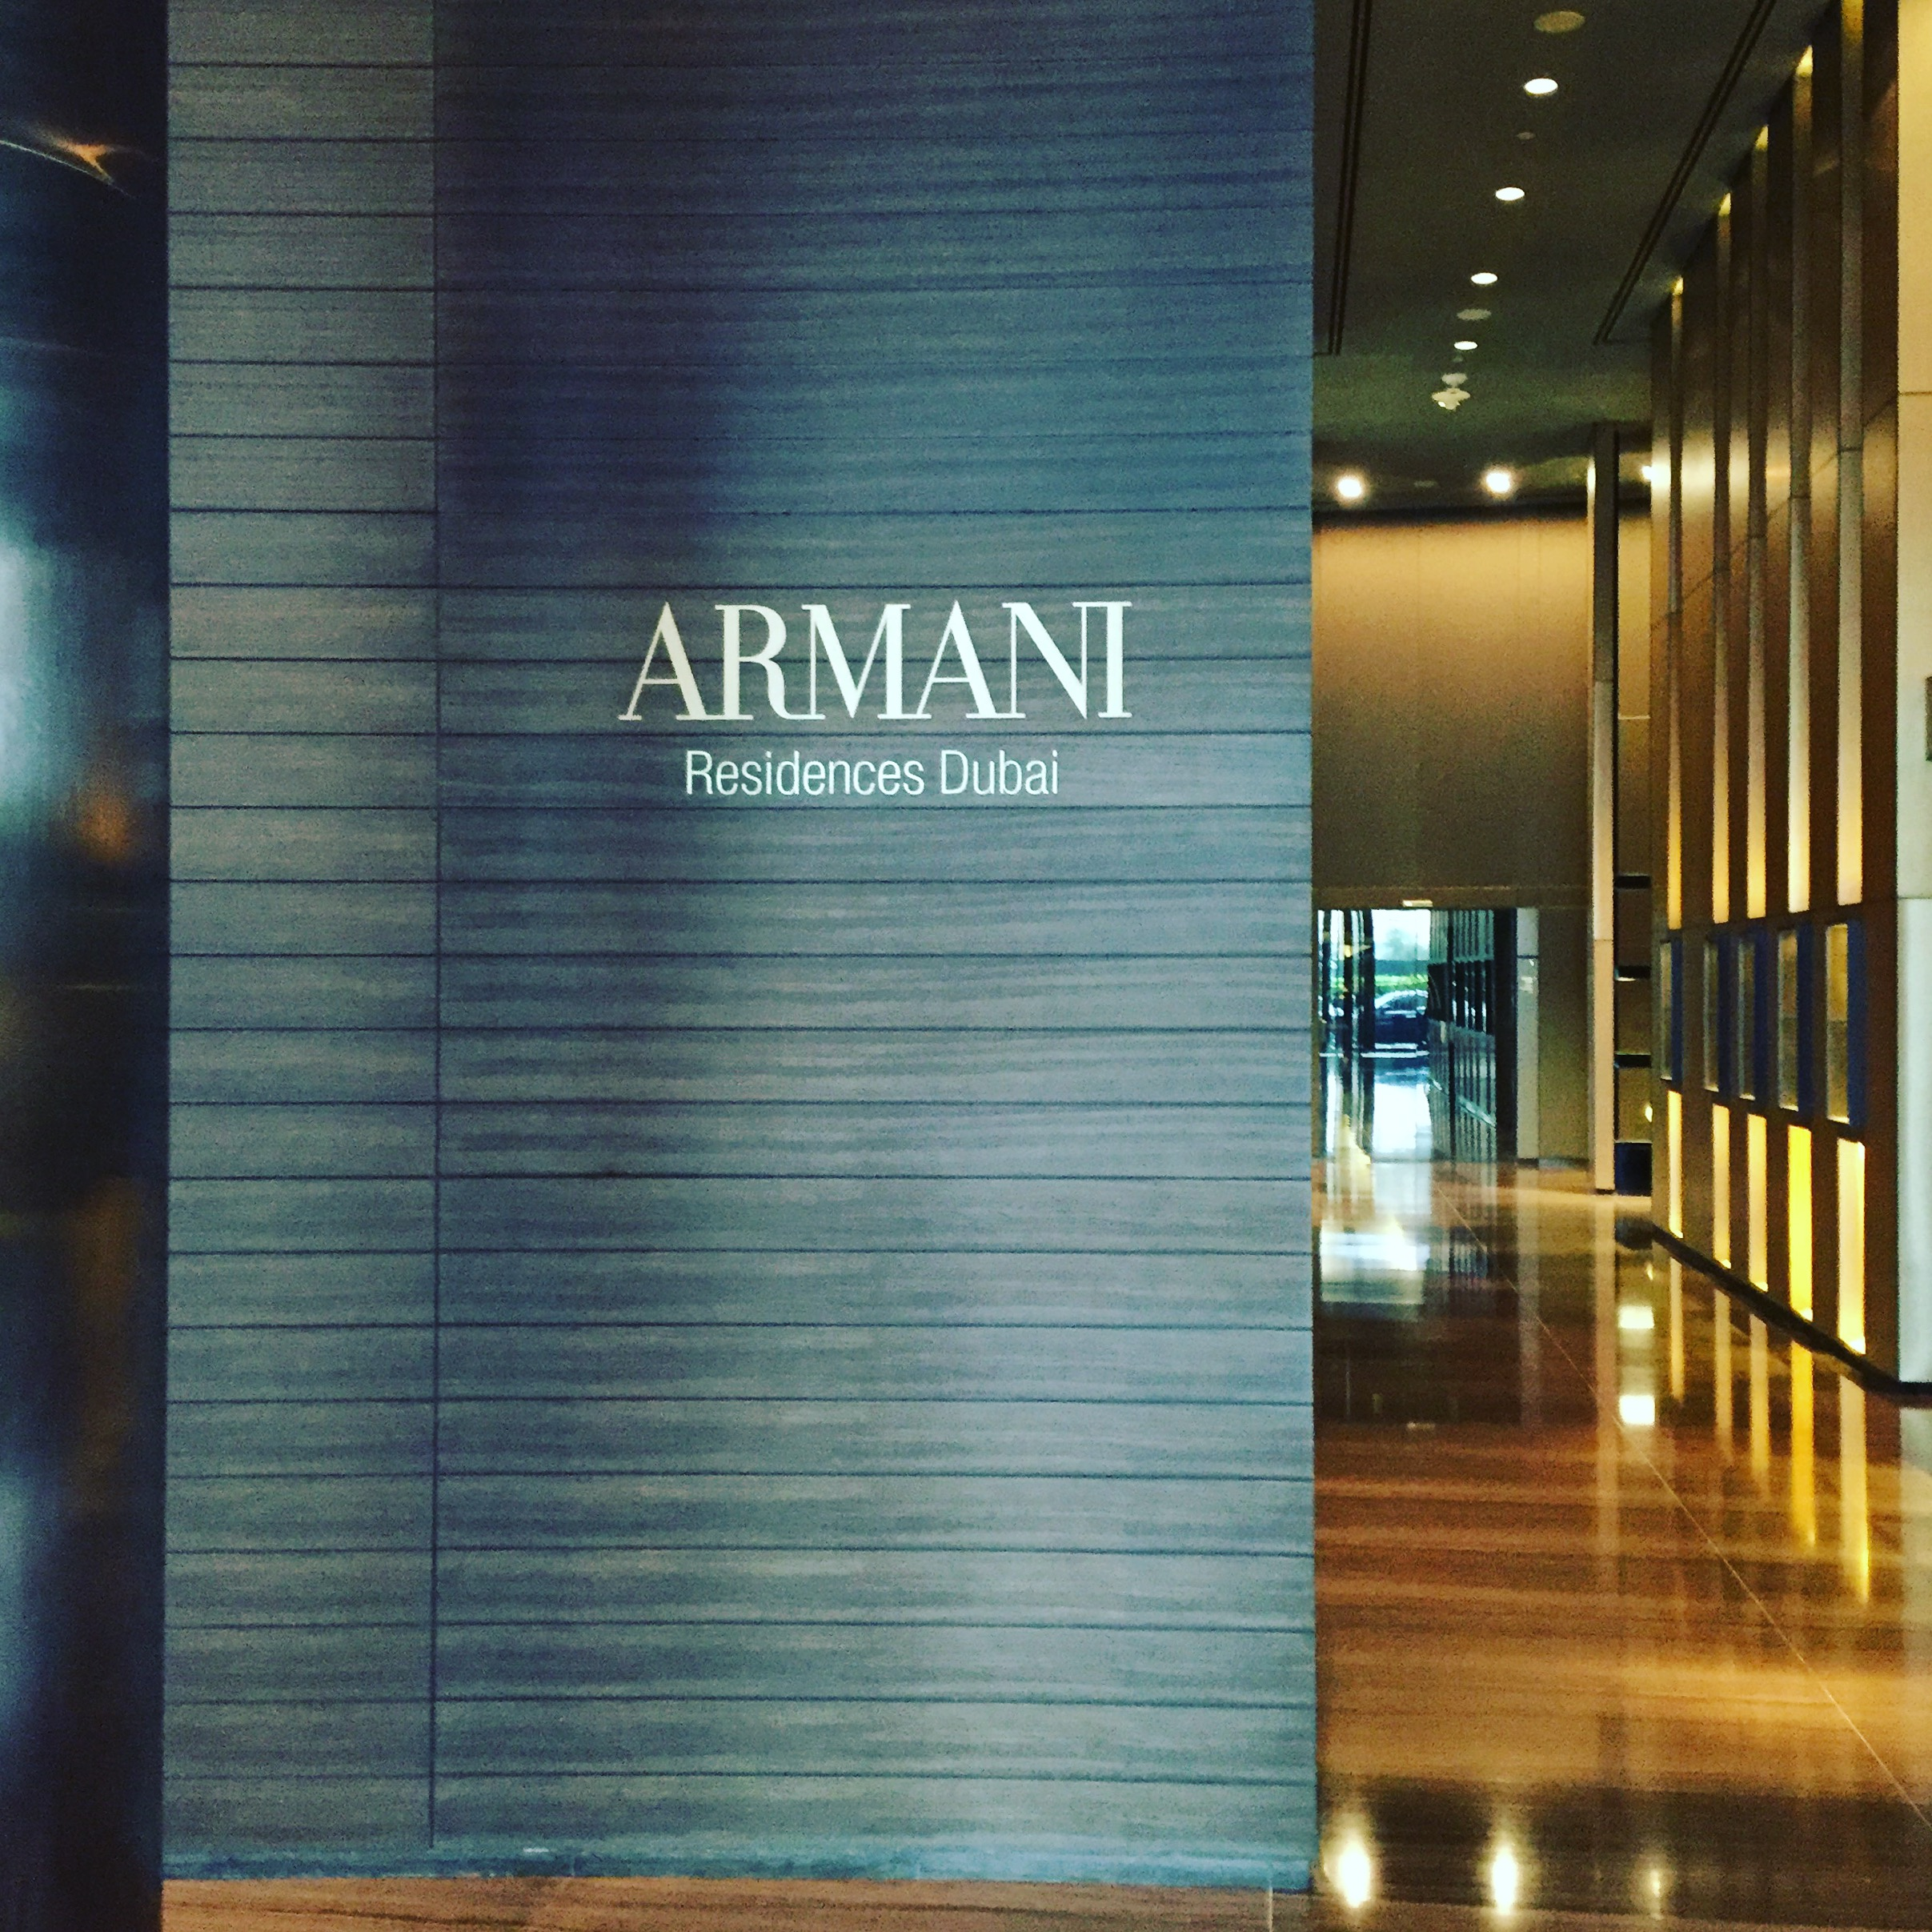 Waiting for high tea at the Armani Residences at Burj Khalifa